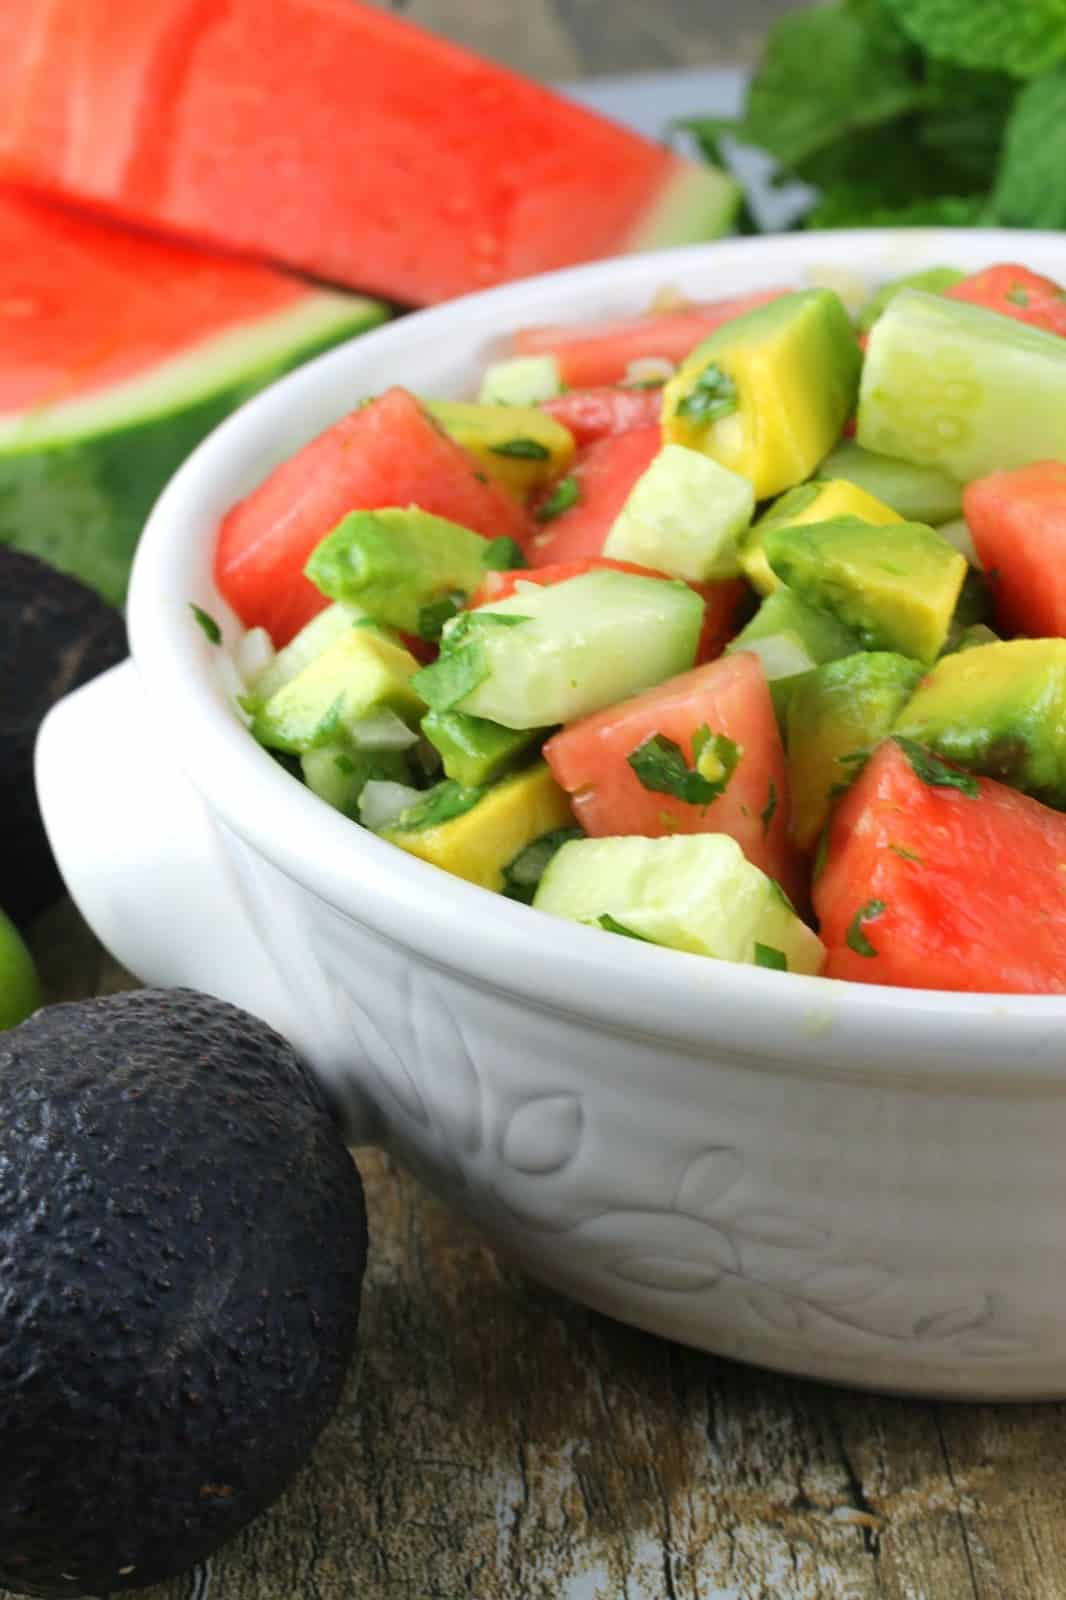 Avocados, cucumber and watermelon are tossed with lime juice and fresh herbs in this light, flavorful, and somewhat adventurous watermelon salad.